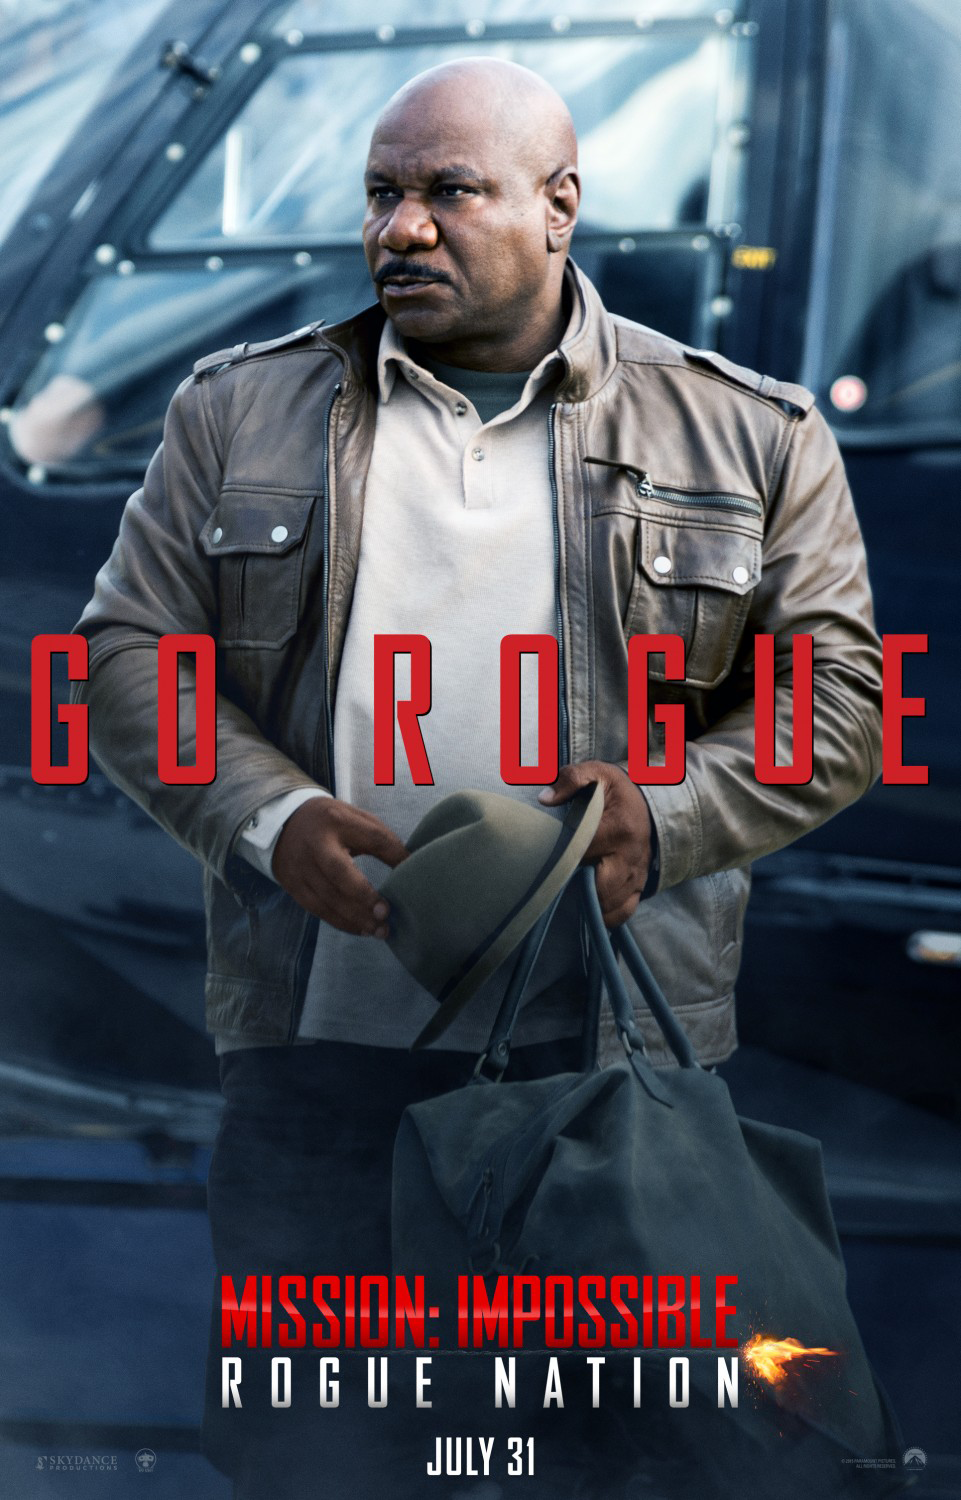 Mission Impossible: Rogue Nation Poster - Ving Rhames